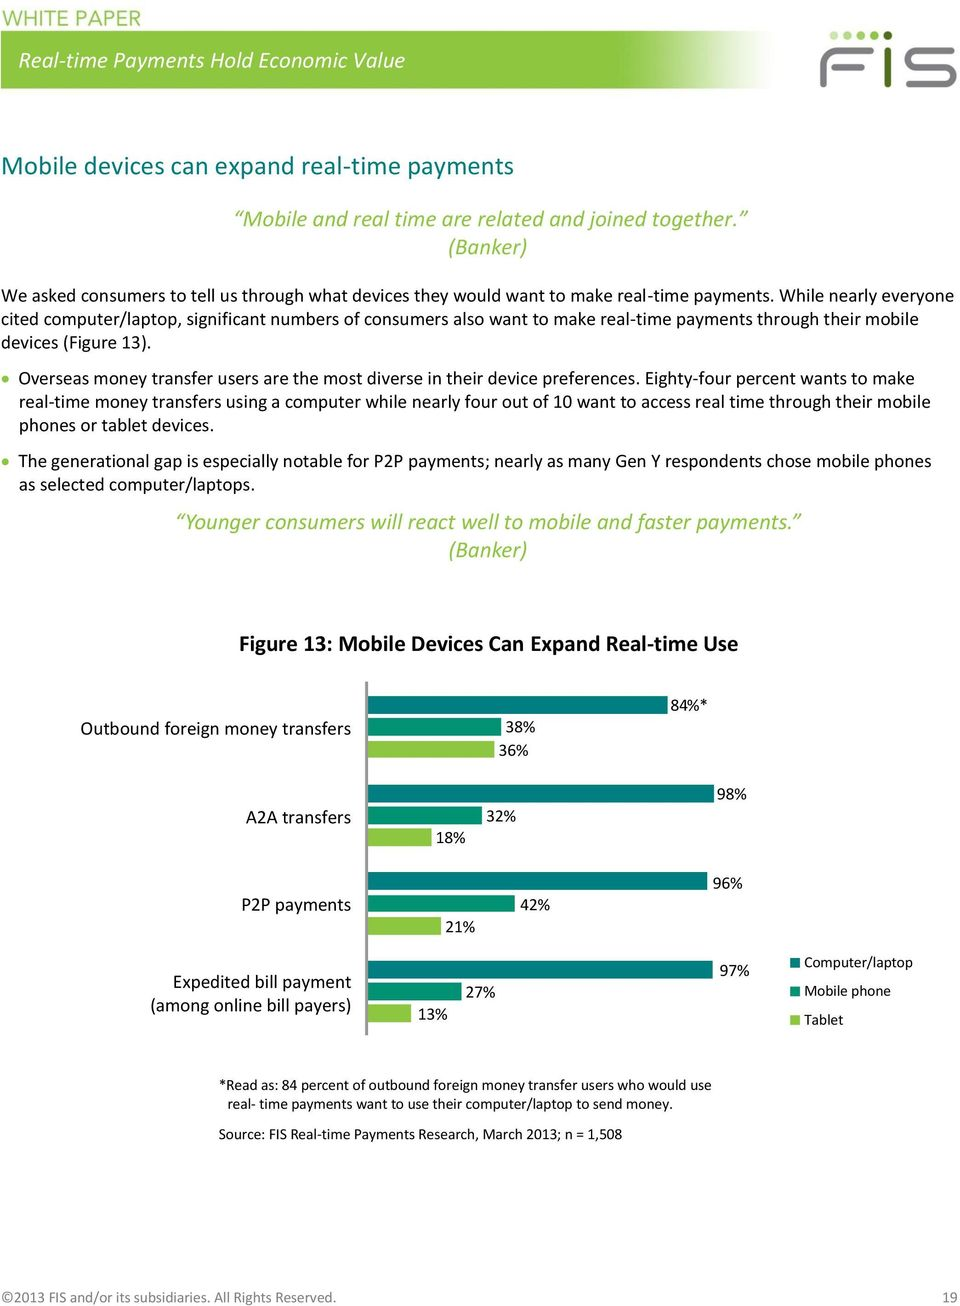 While nearly everyone cited computer/laptop, significant numbers of consumers also want to make real-time payments through their mobile devices (Figure 13).